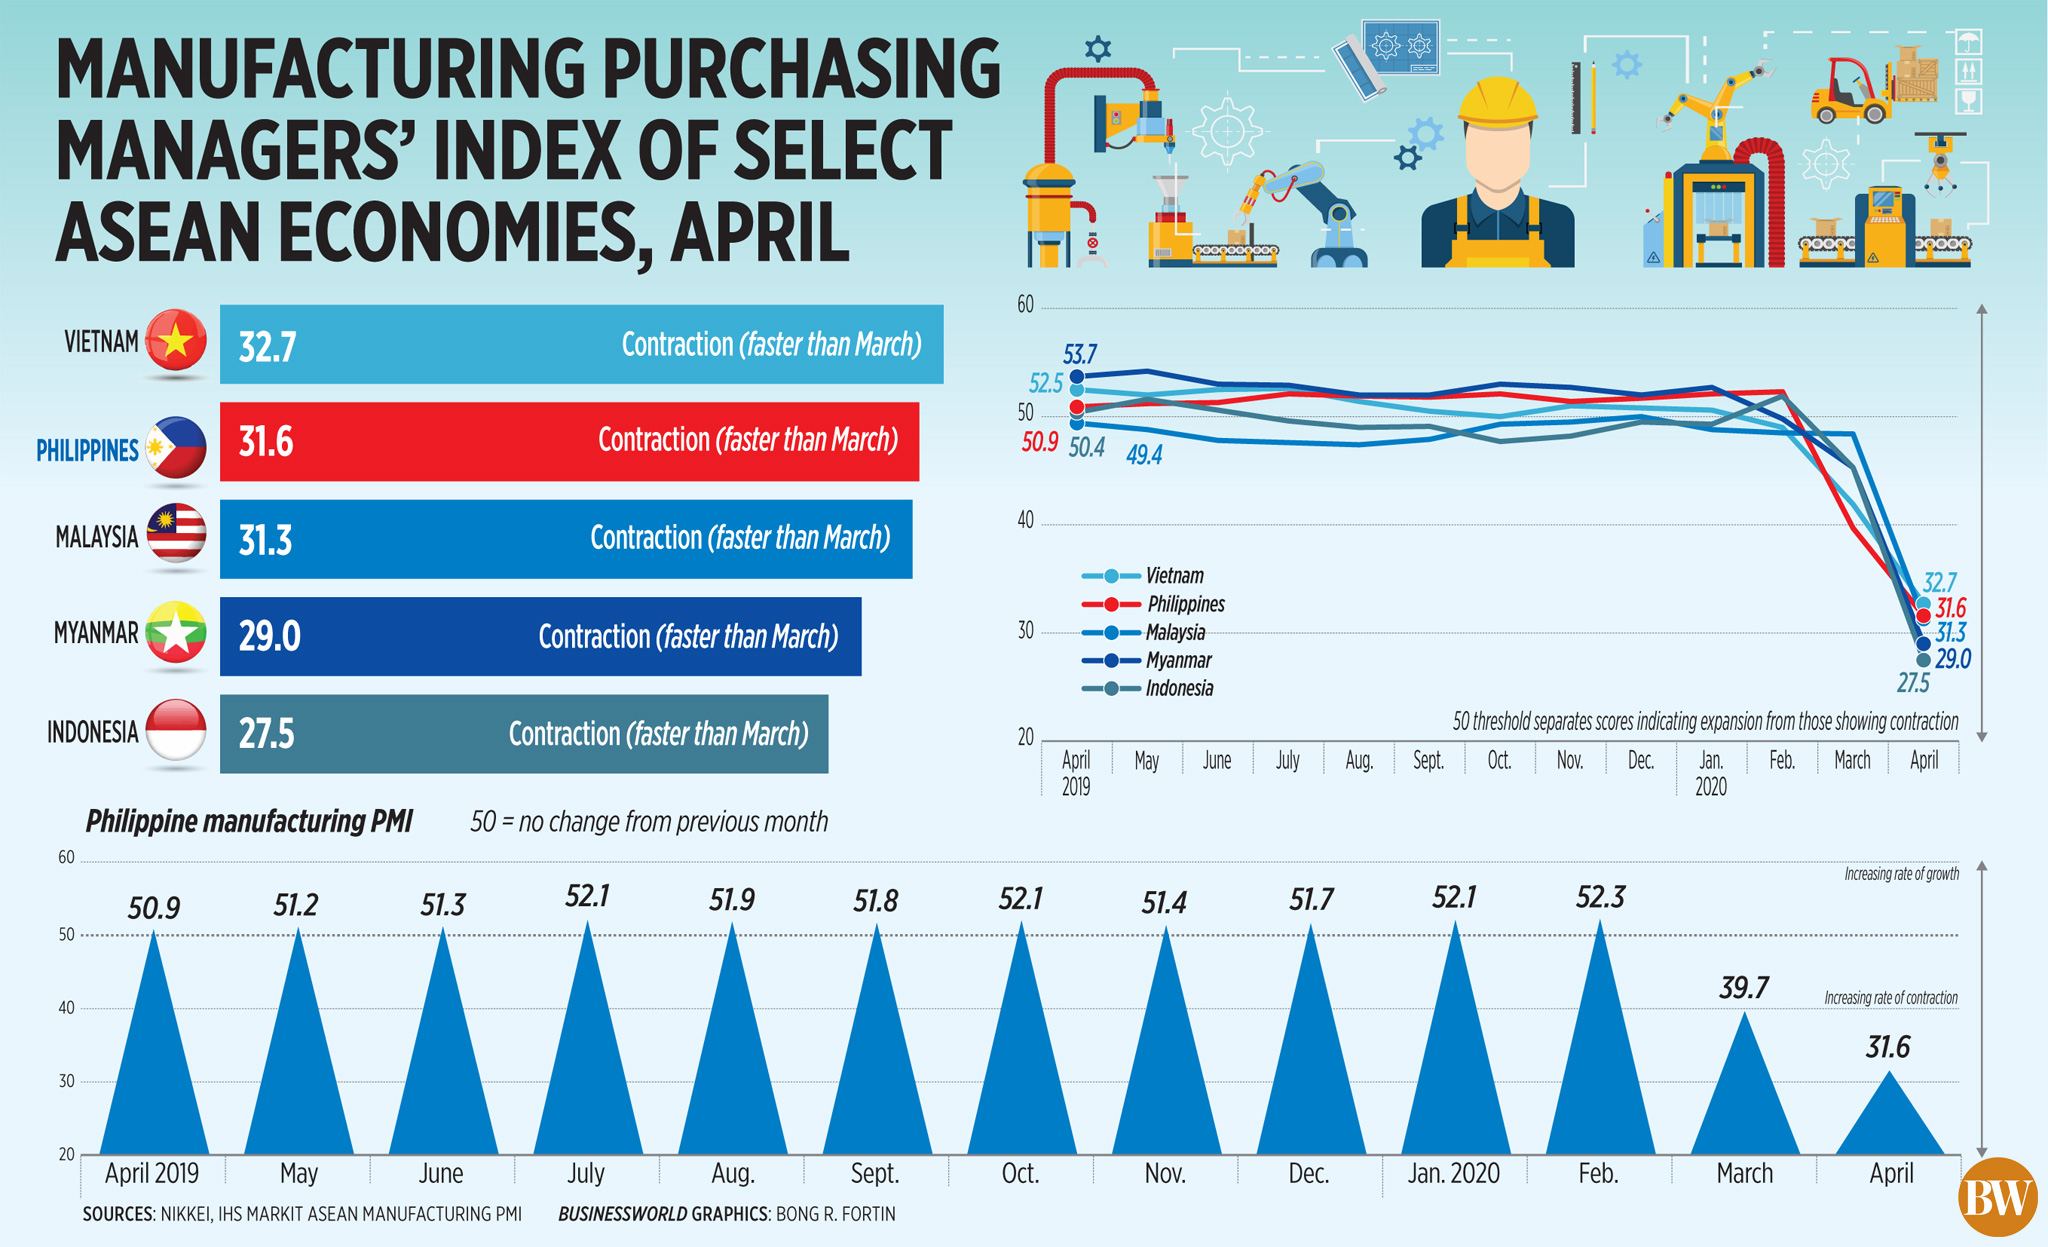 Manufacturing purchasing managers' index of select ASEAN economies, April (2020)